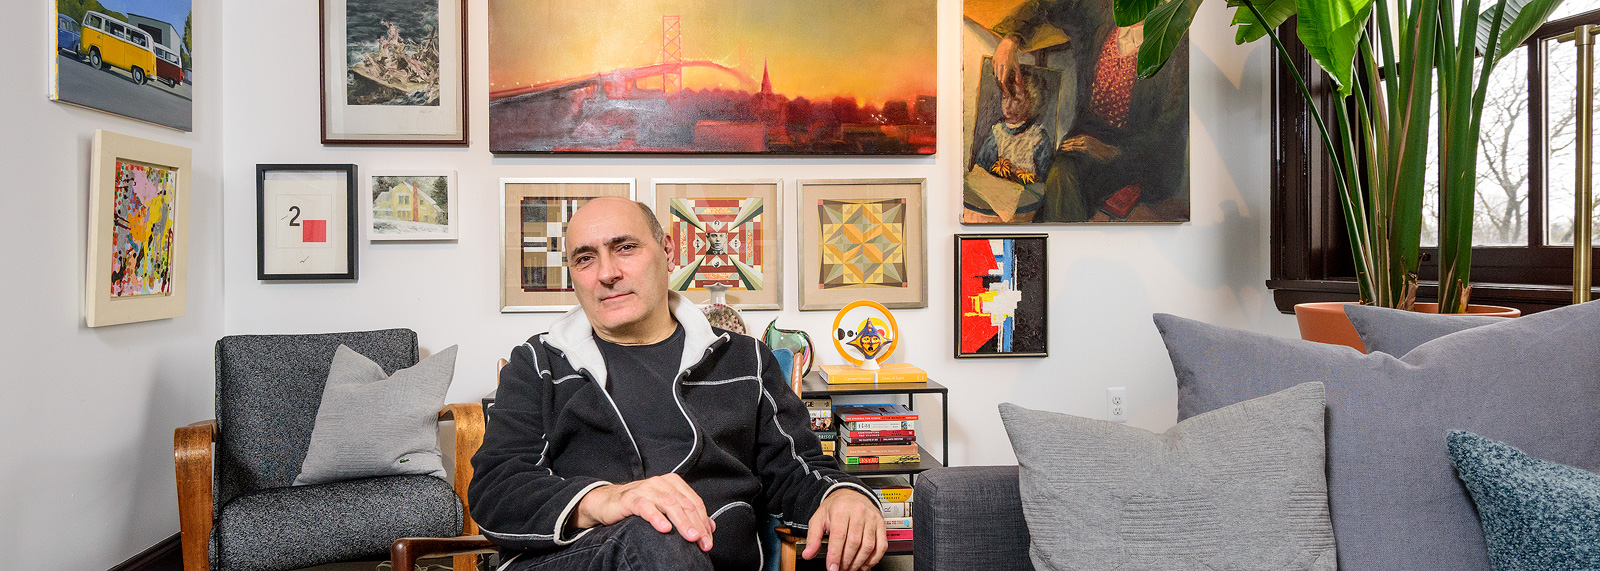 Meet the artists of Dearborn's old city hall